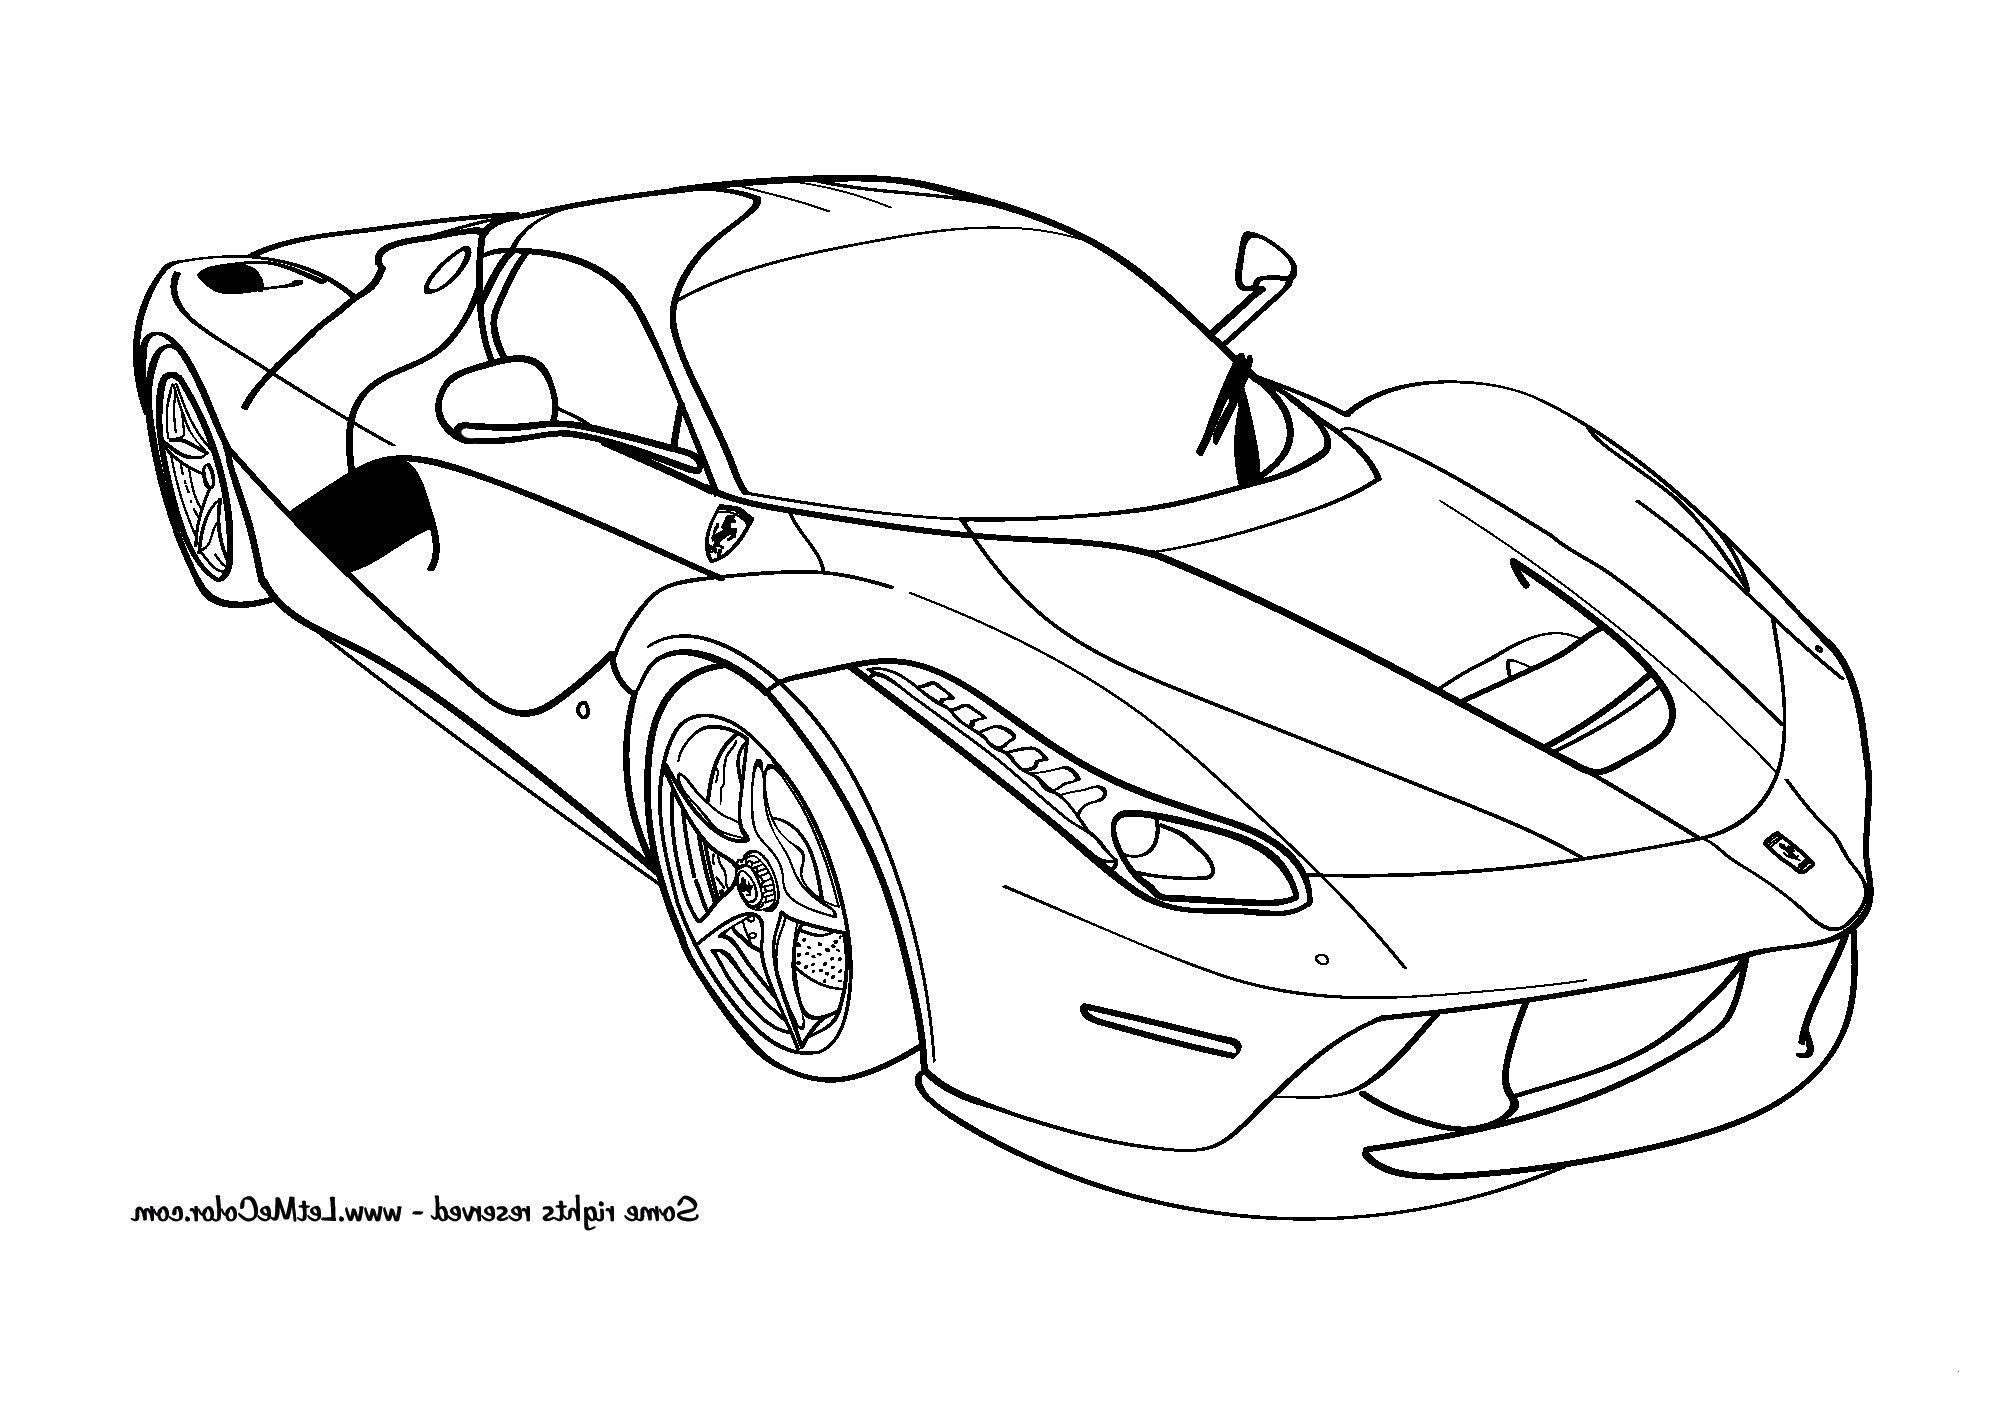 Car Coloring Sheets In 2021 Coloring Pages Race Car Coloring Pages Cars Coloring Pages